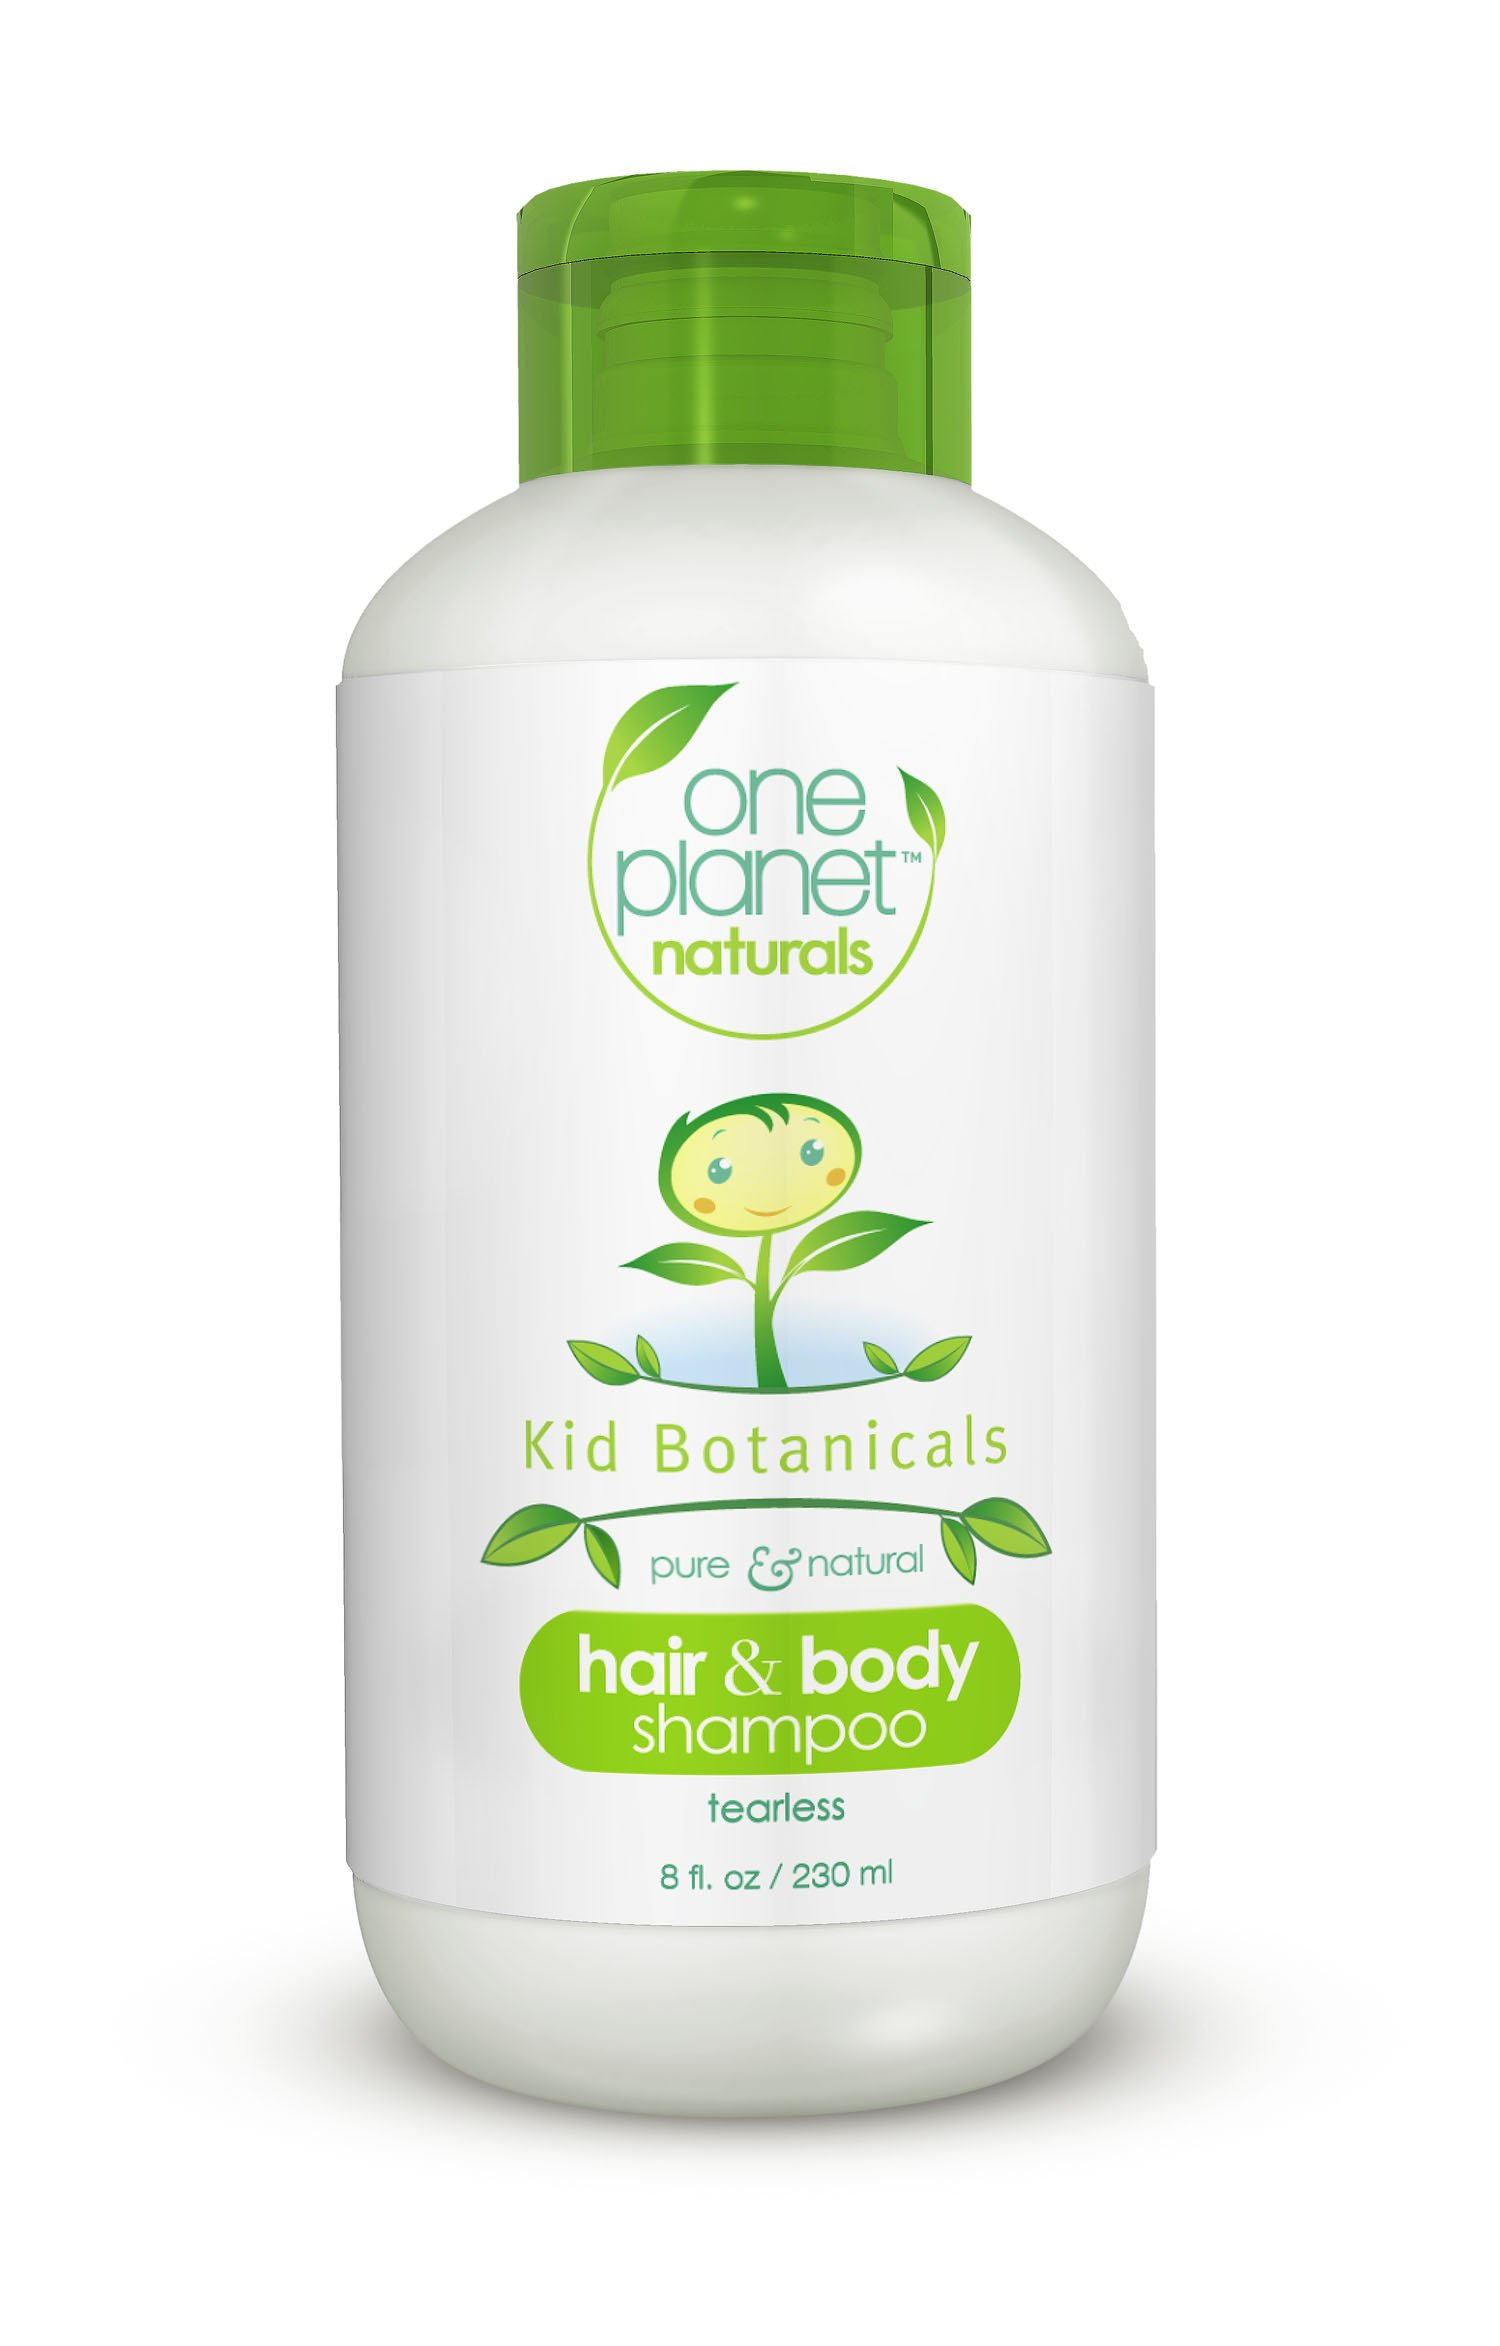 One Planet Naturals Hair & Body Shampoo (Tearless)